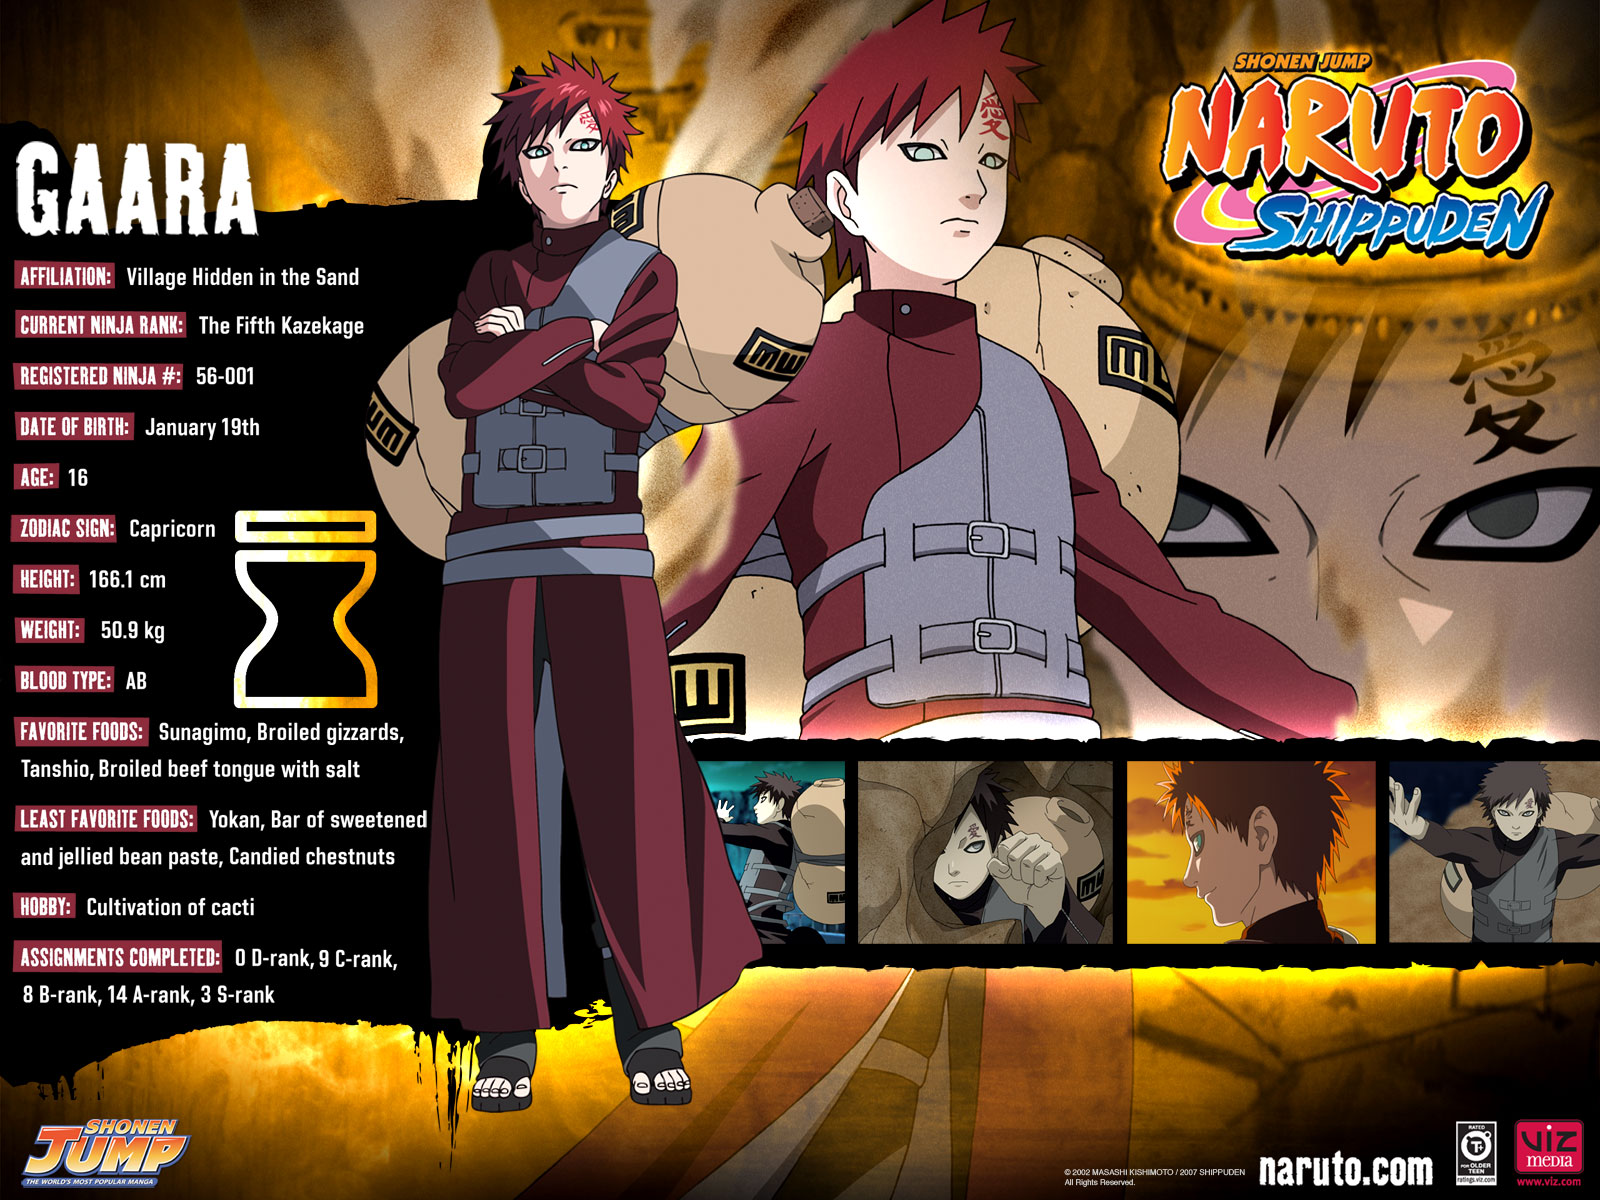 Gaara Naruto Shippuden Wallpaper Naruto Wallpaper For Desktop 1600x1200